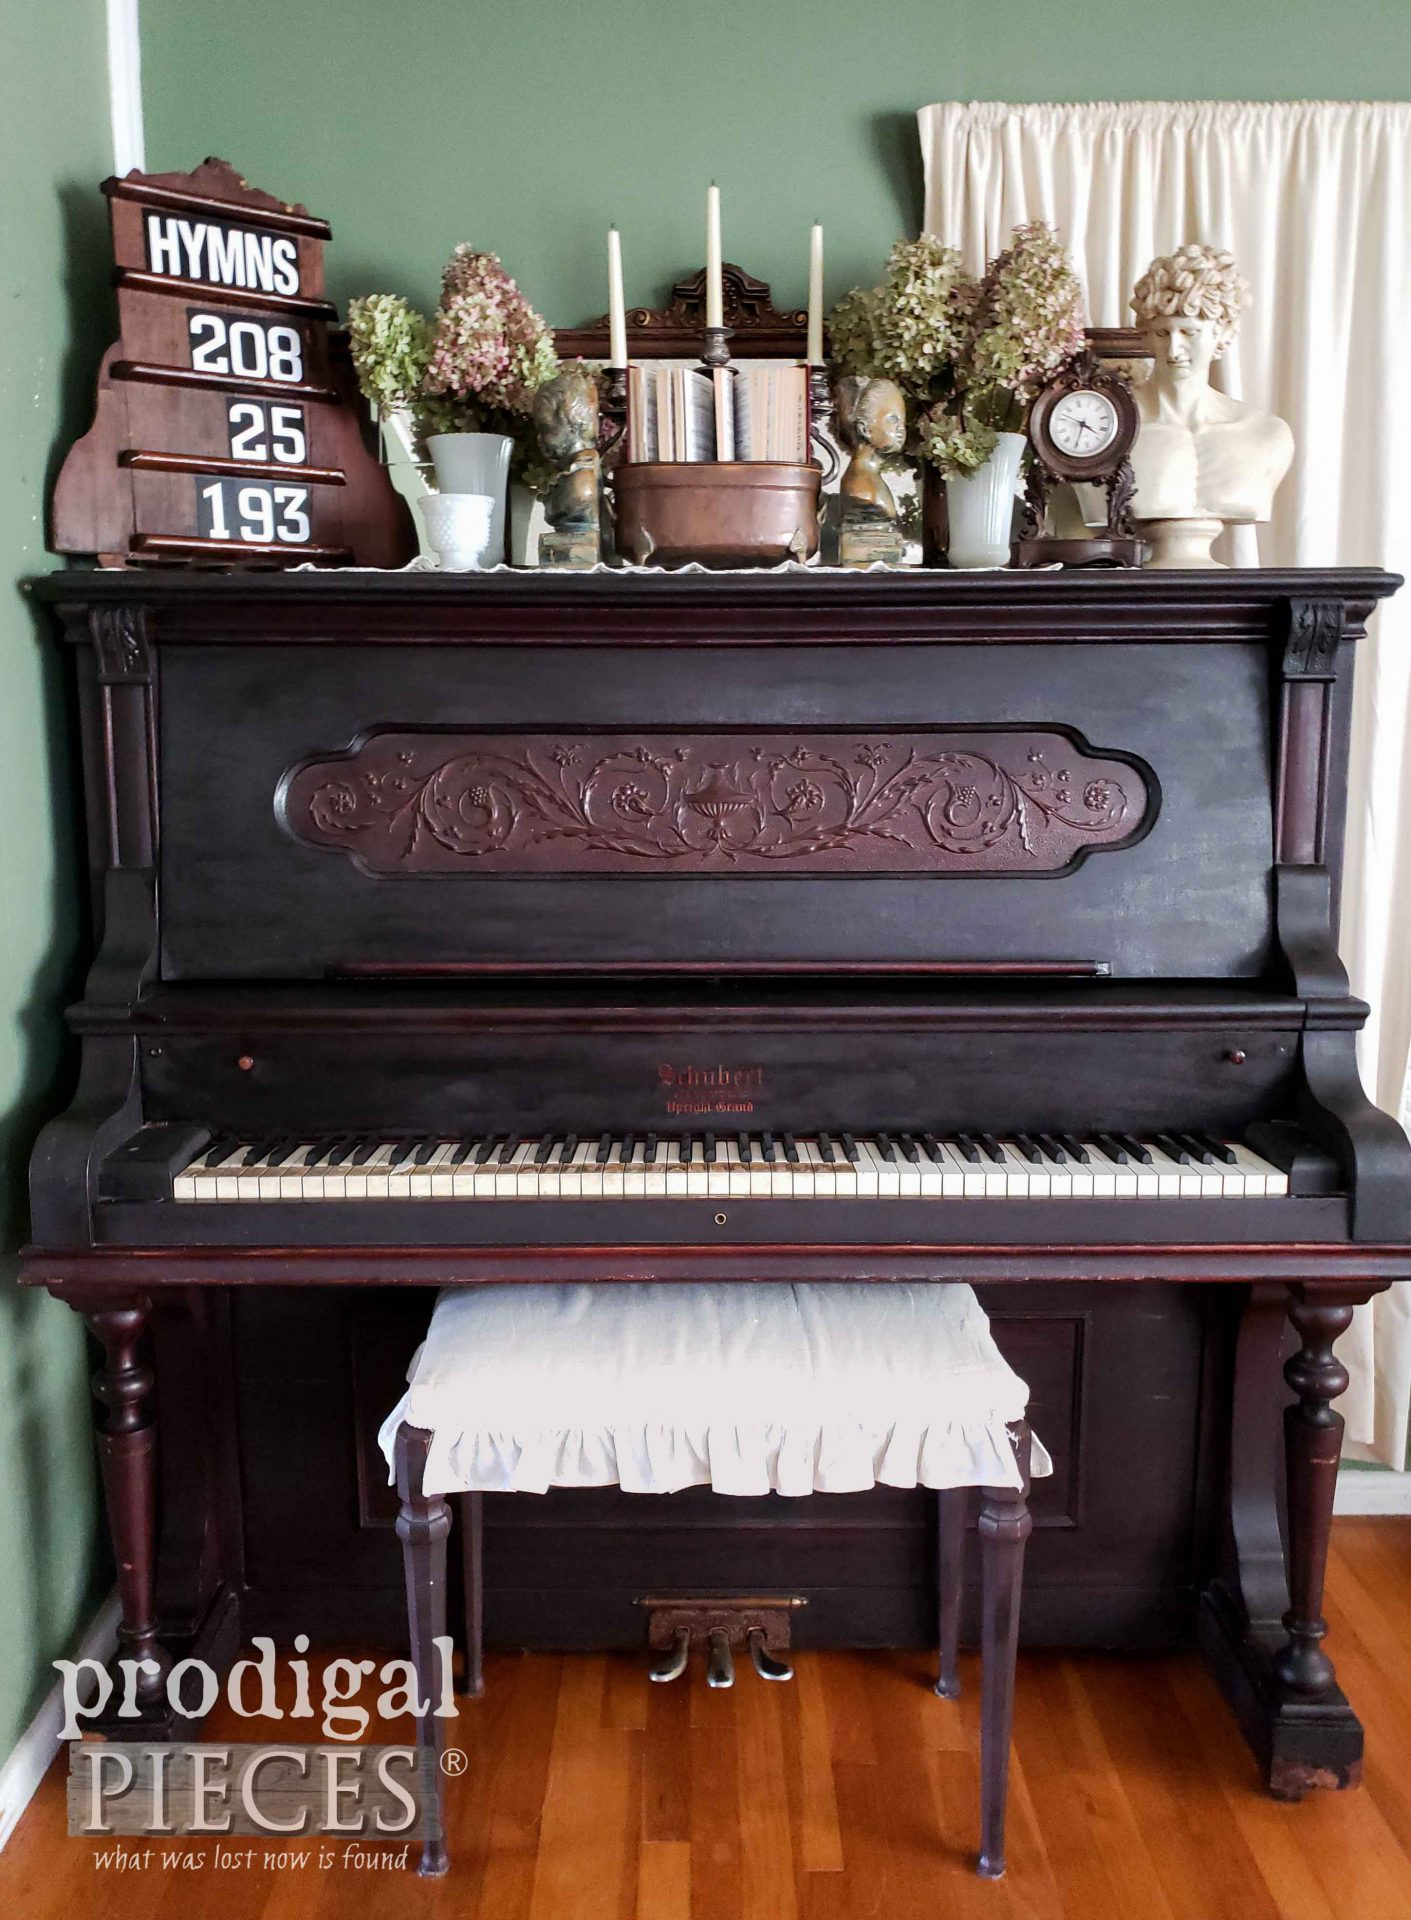 Antique Upright Grand Piano with Upcycled Hymn Board on Top by Larissa of Prodigal Pieces | prodigalpieces.com #prodigalpieces #farmhouse #piano #upcycled #diy #home #homedecor